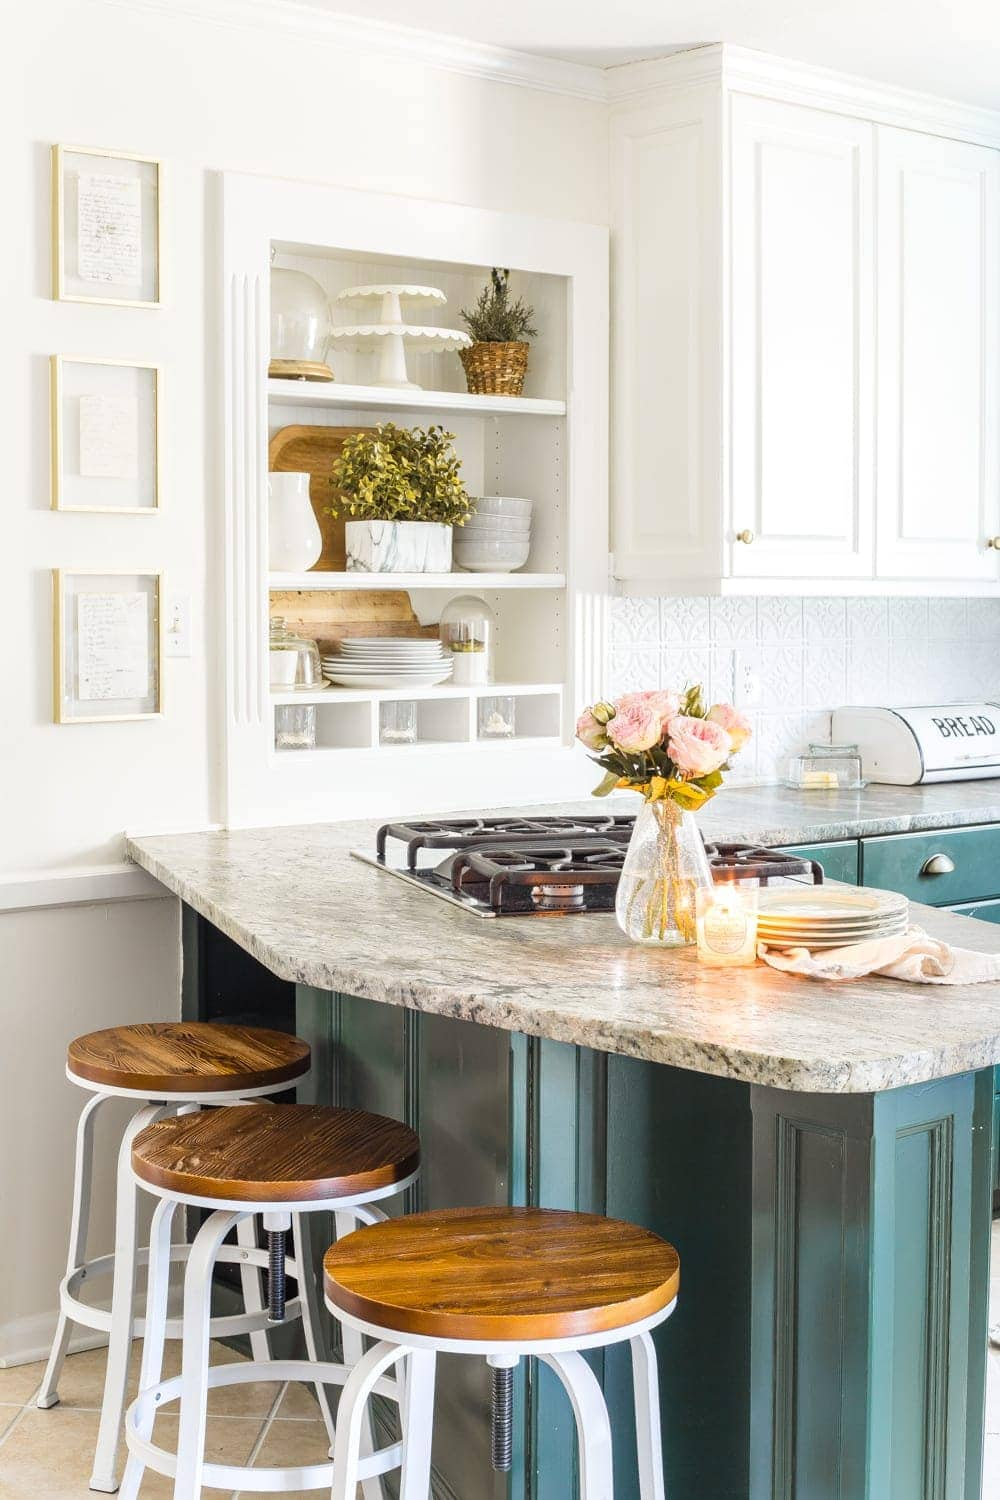 Simple Spring Home Tour | Kitchen decorated with a few small spring touches